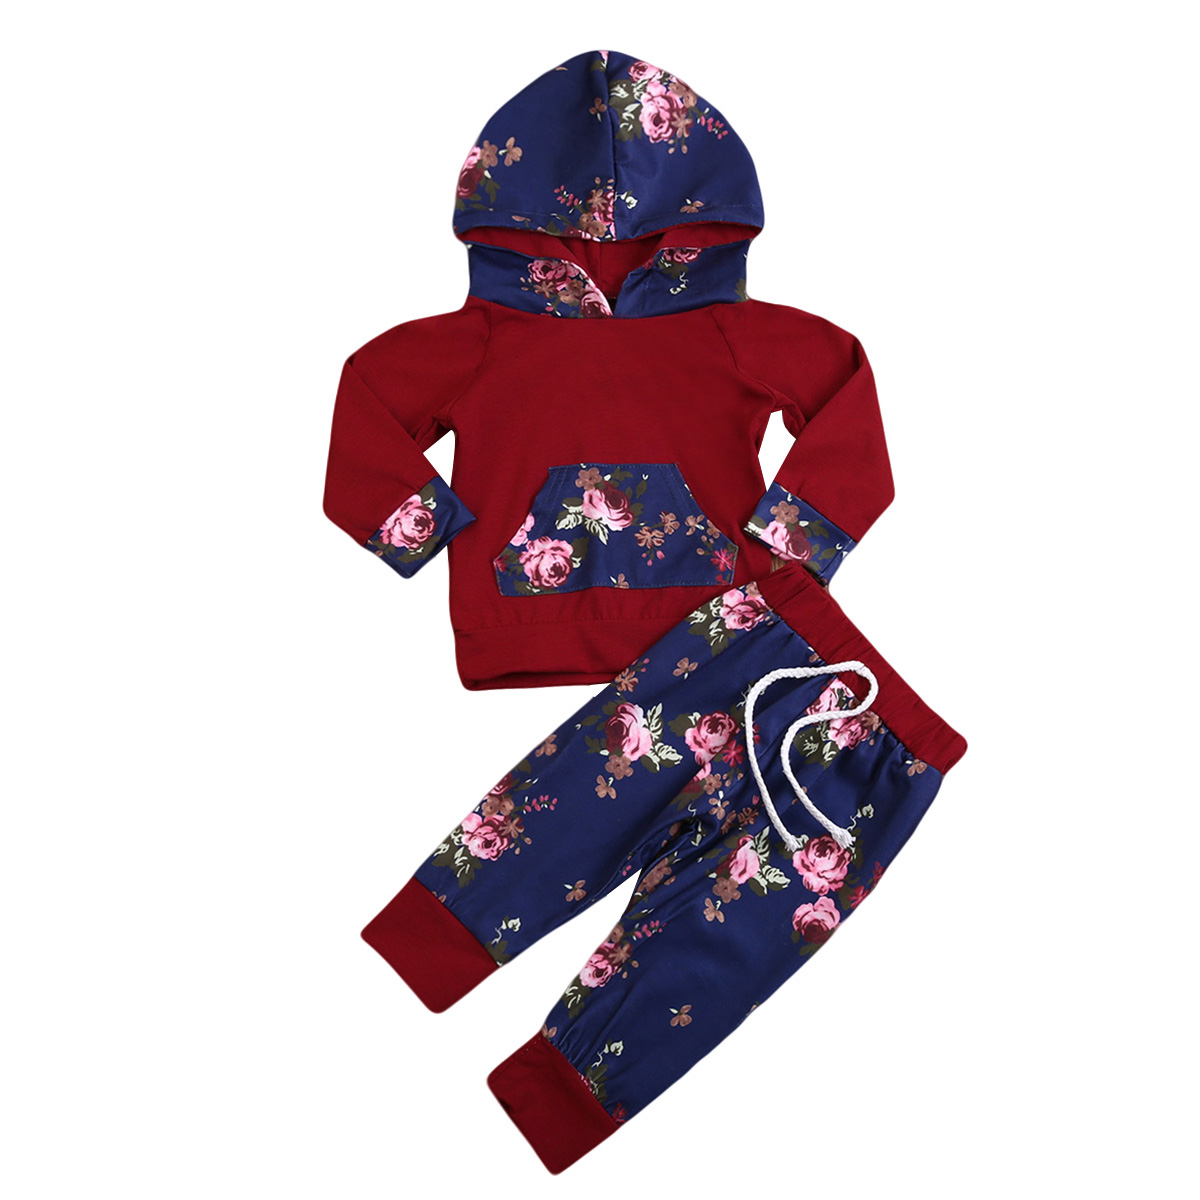 2017 Toddler Baby Clothes Set Lovely Newborn Infant Baby Boy Girls Floral Hooded T-shirt Top+Pants Outfit Clothes